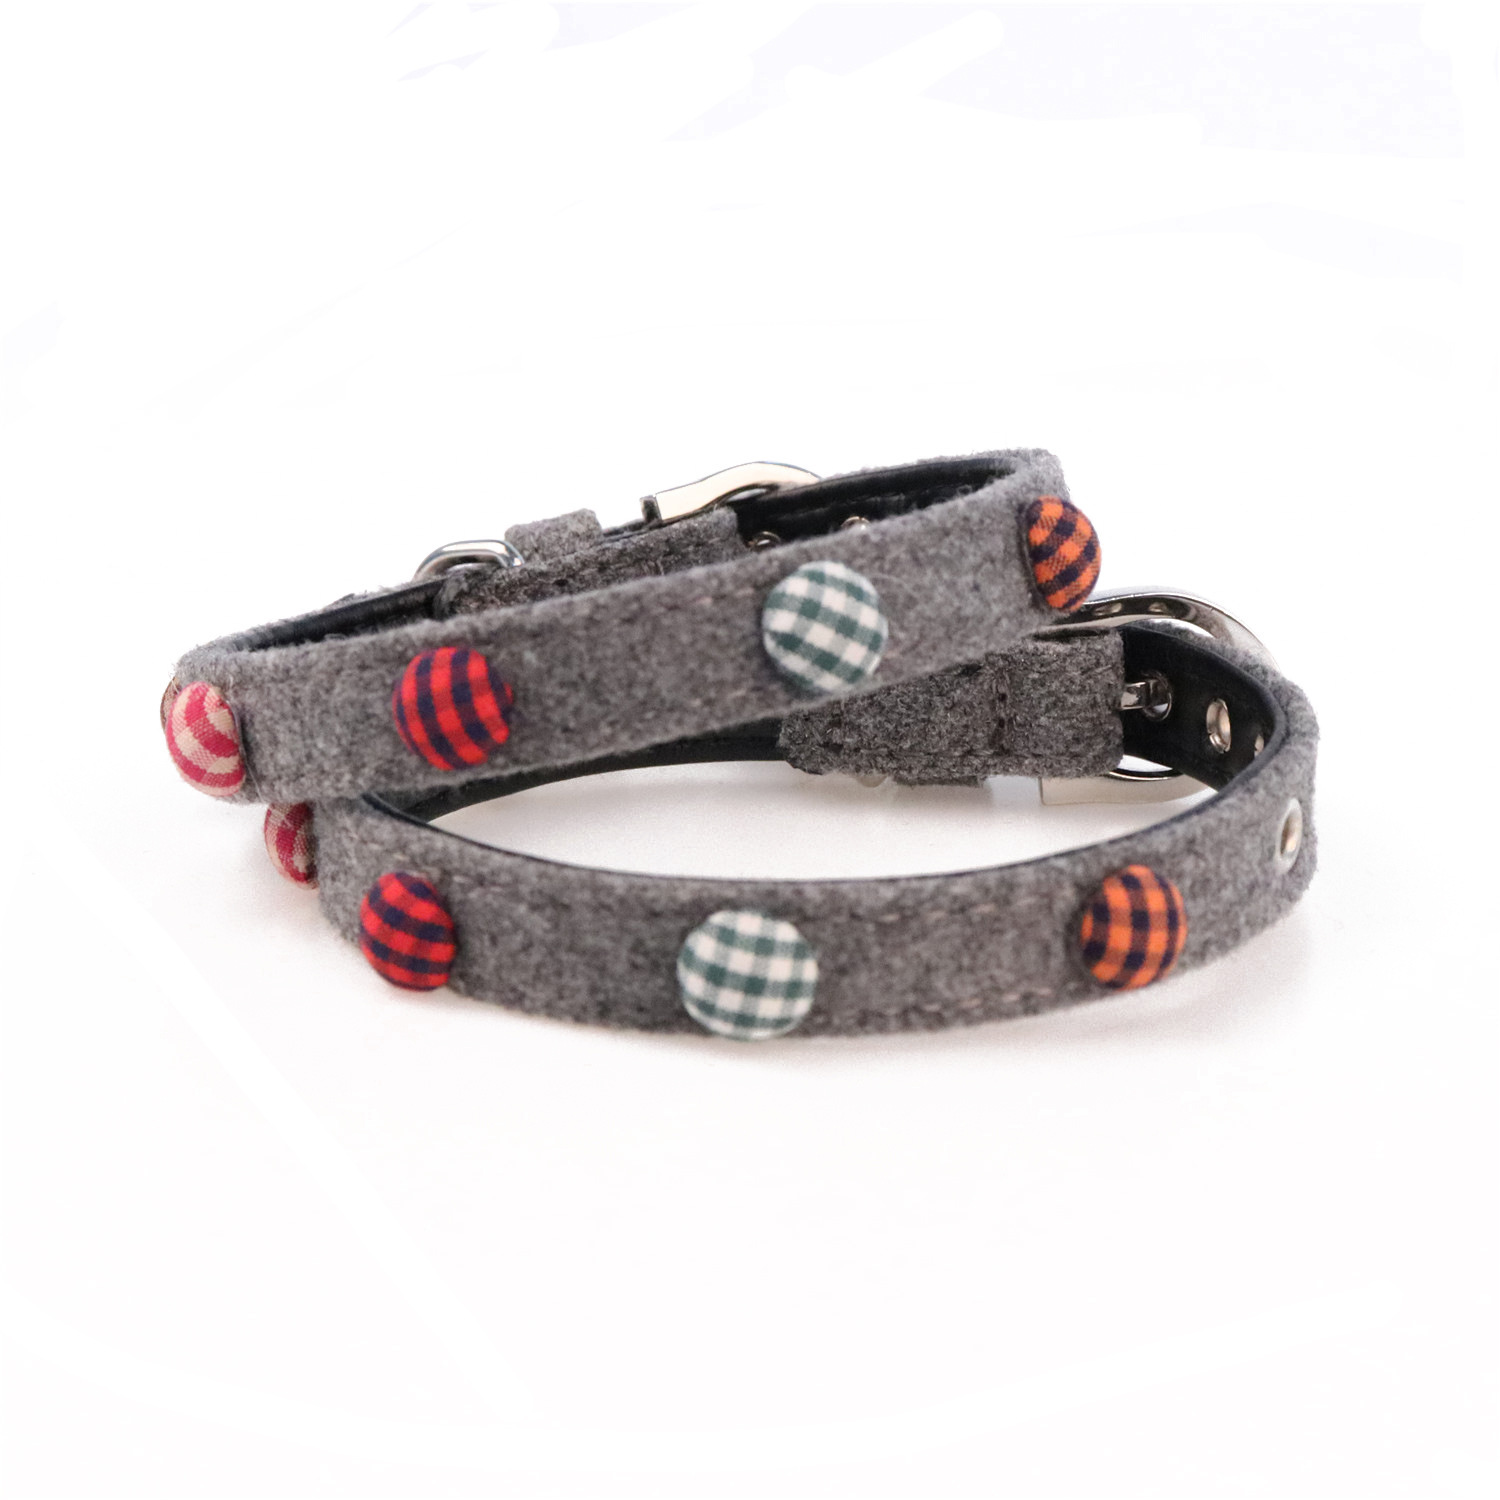 Jin Jie Te New Style Plaid Button Pet Collar Fabric Woolen Cloth Dog Neck Ring Compatible Traction